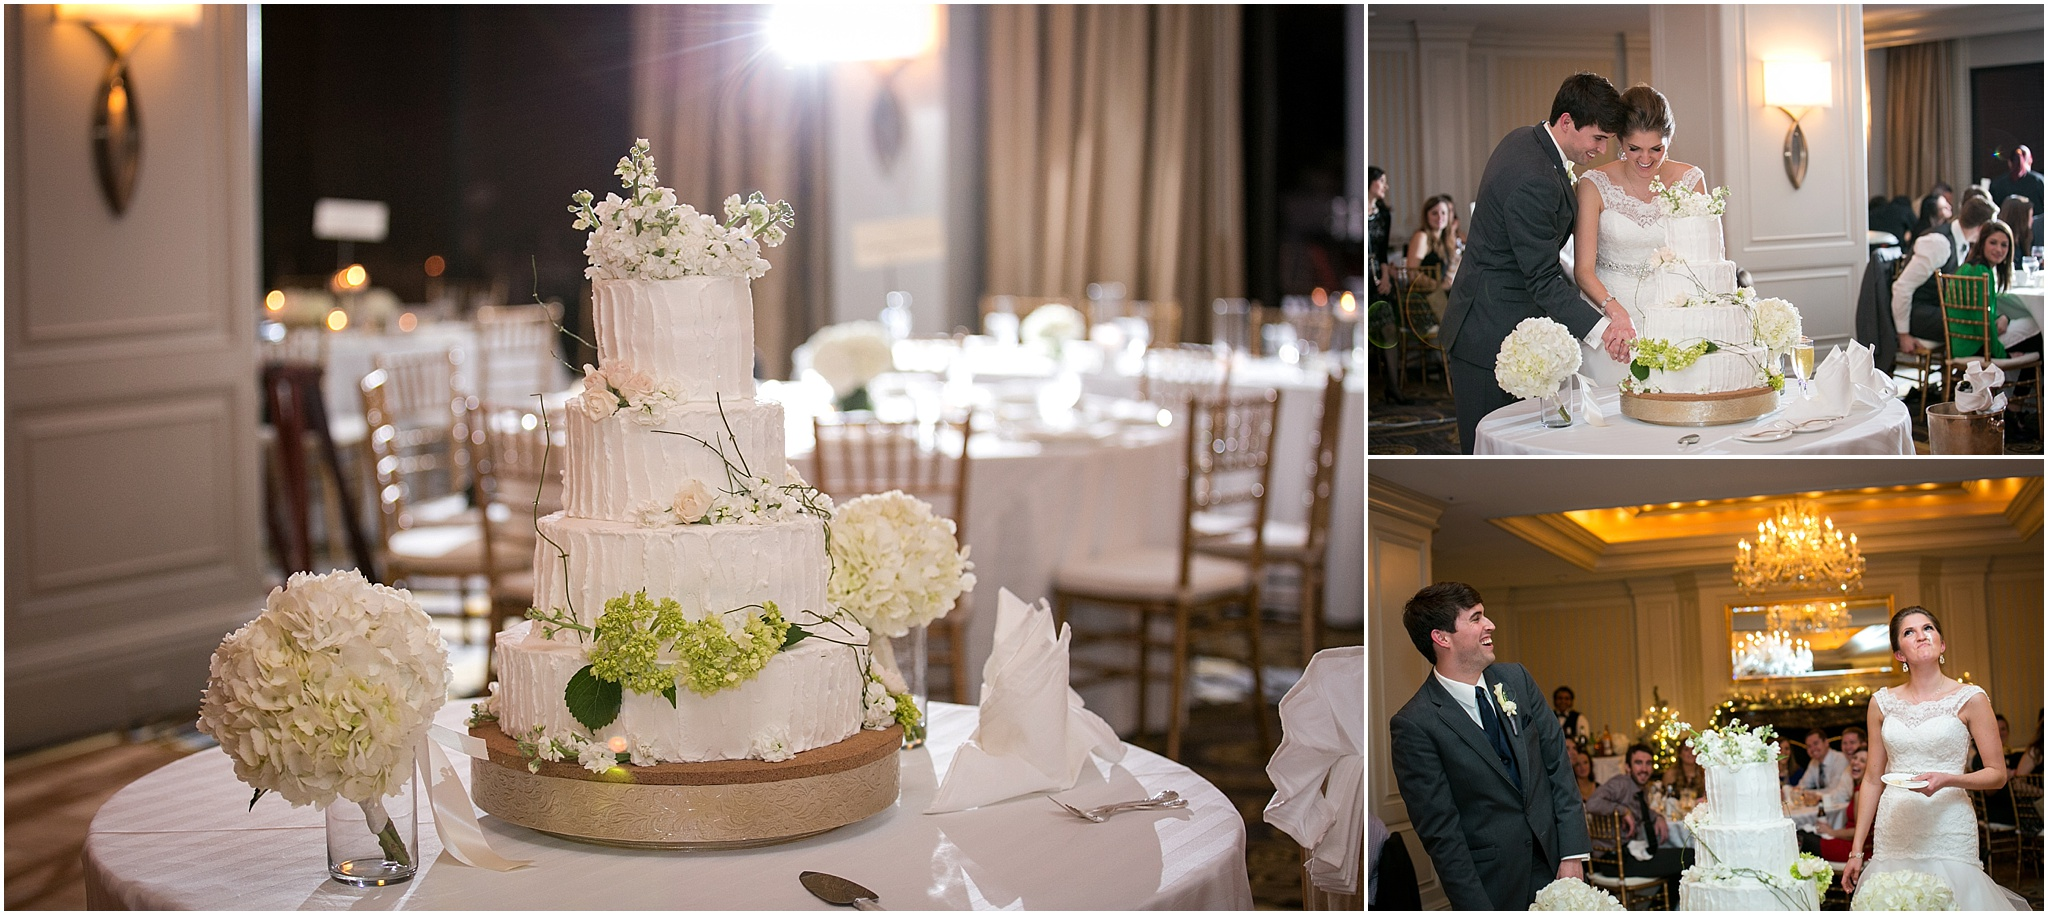 IntercontinentalPlaza_KansasCity_WeddingPhotographer_0032